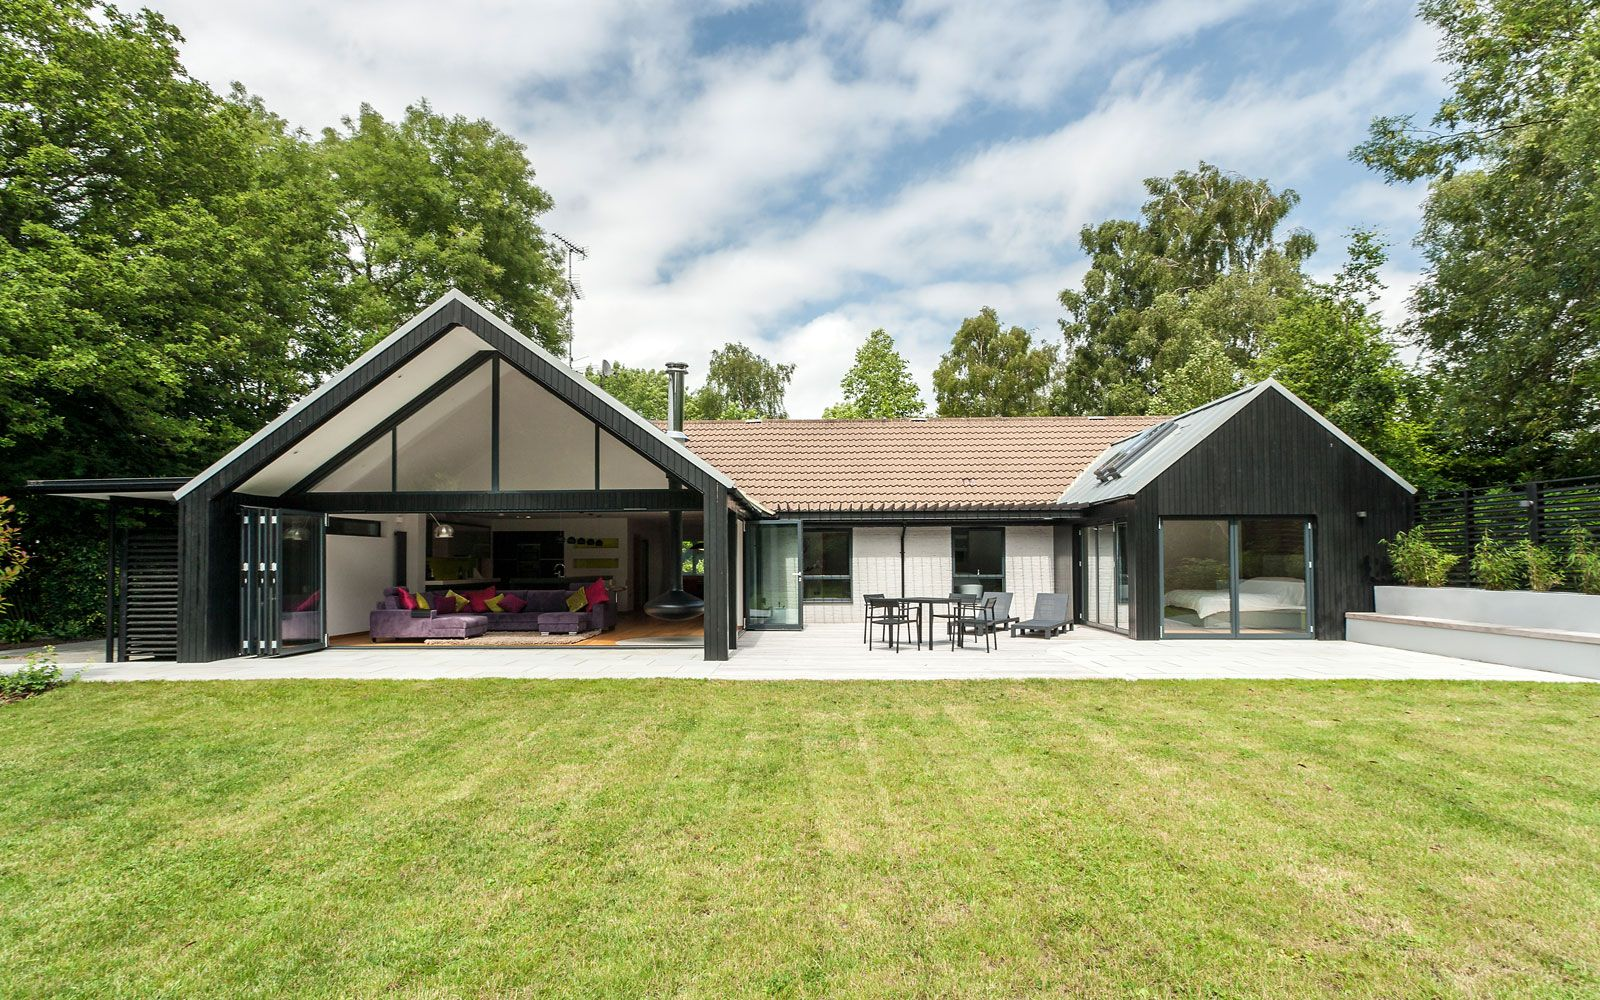 Bildergebnis f r contemporary bungalow design haus for Modern house designs uk